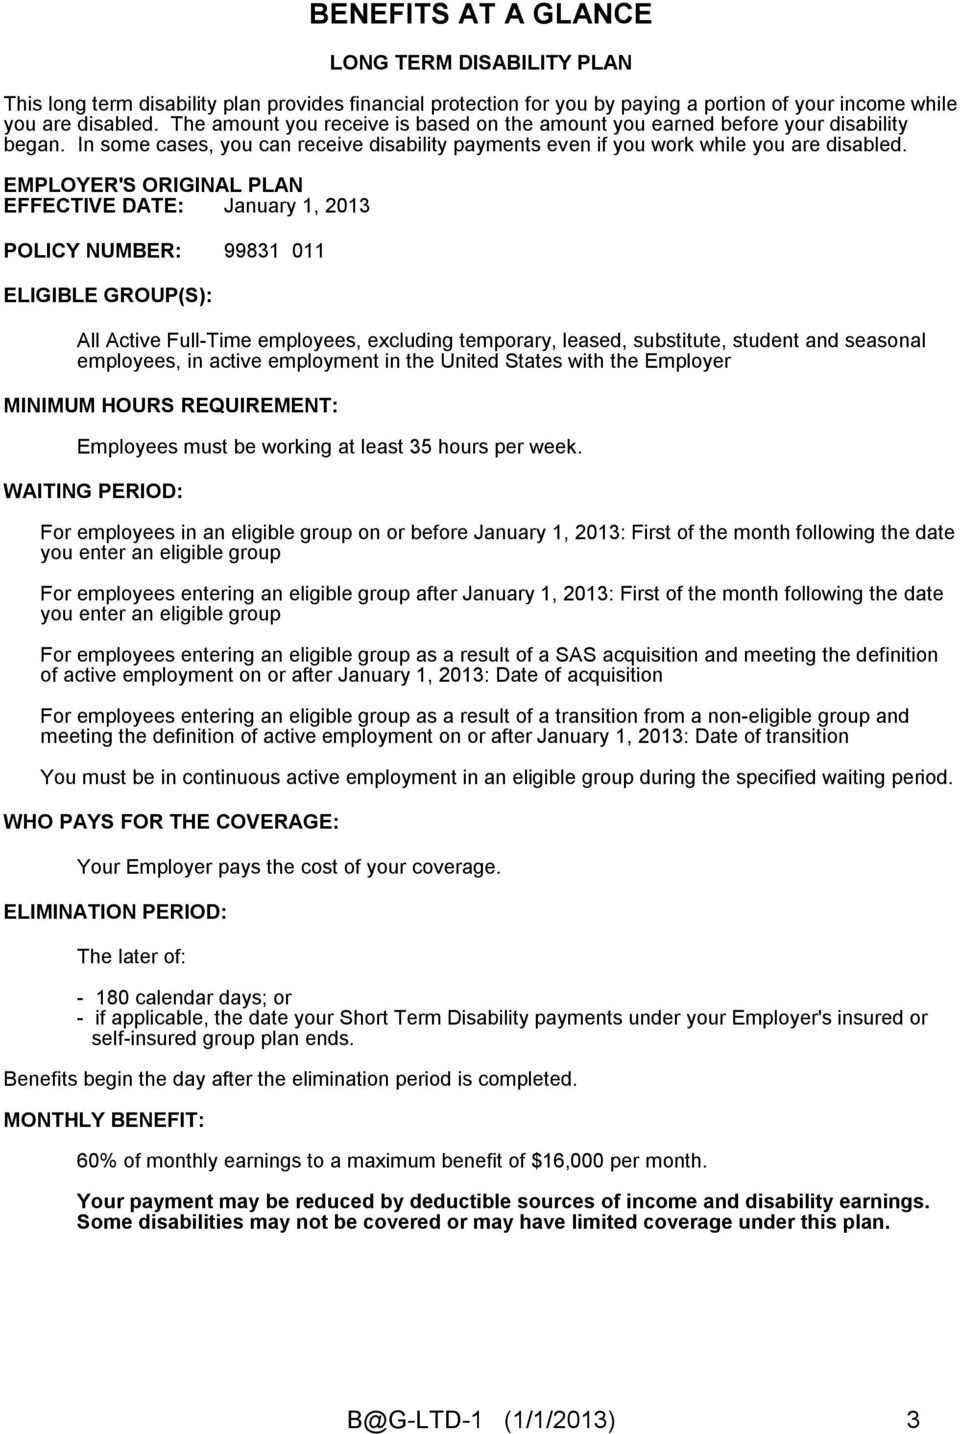 EMPLOYER'S ORIGINAL PLAN EFFECTIVE DATE: January 1, 2013 POLICY NUMBER: 99831 011 ELIGIBLE GROUP(S): All Active Full-Time employees, excluding temporary, leased, substitute, student and seasonal